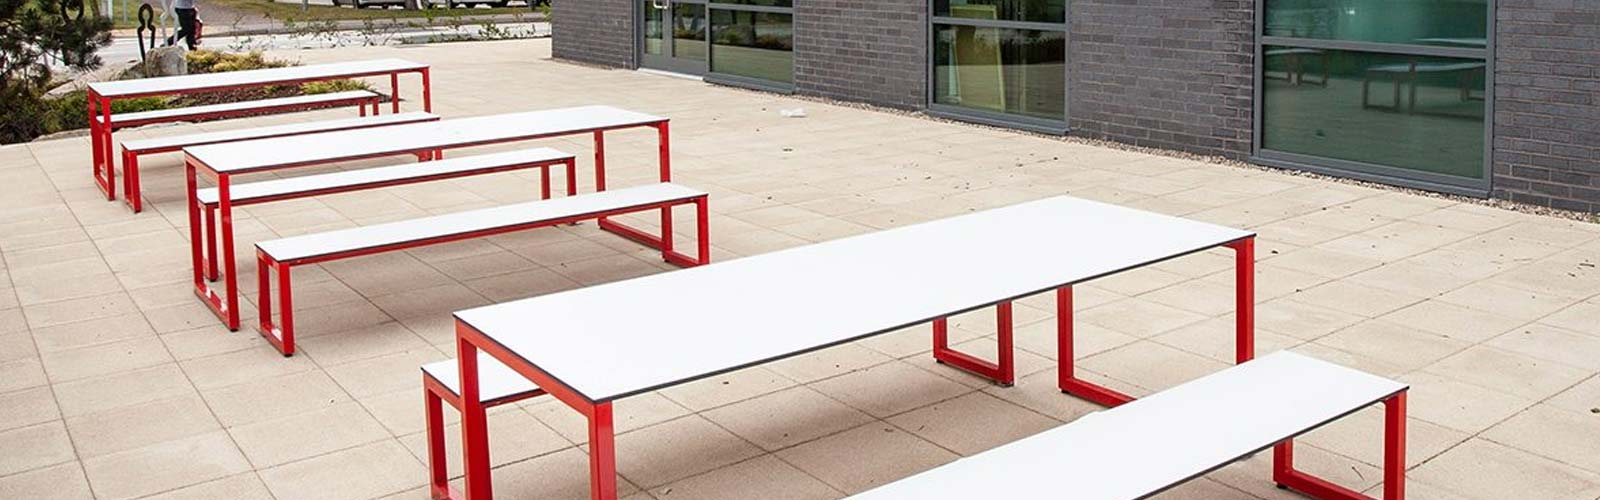 Outdoor office furniture from Frovi